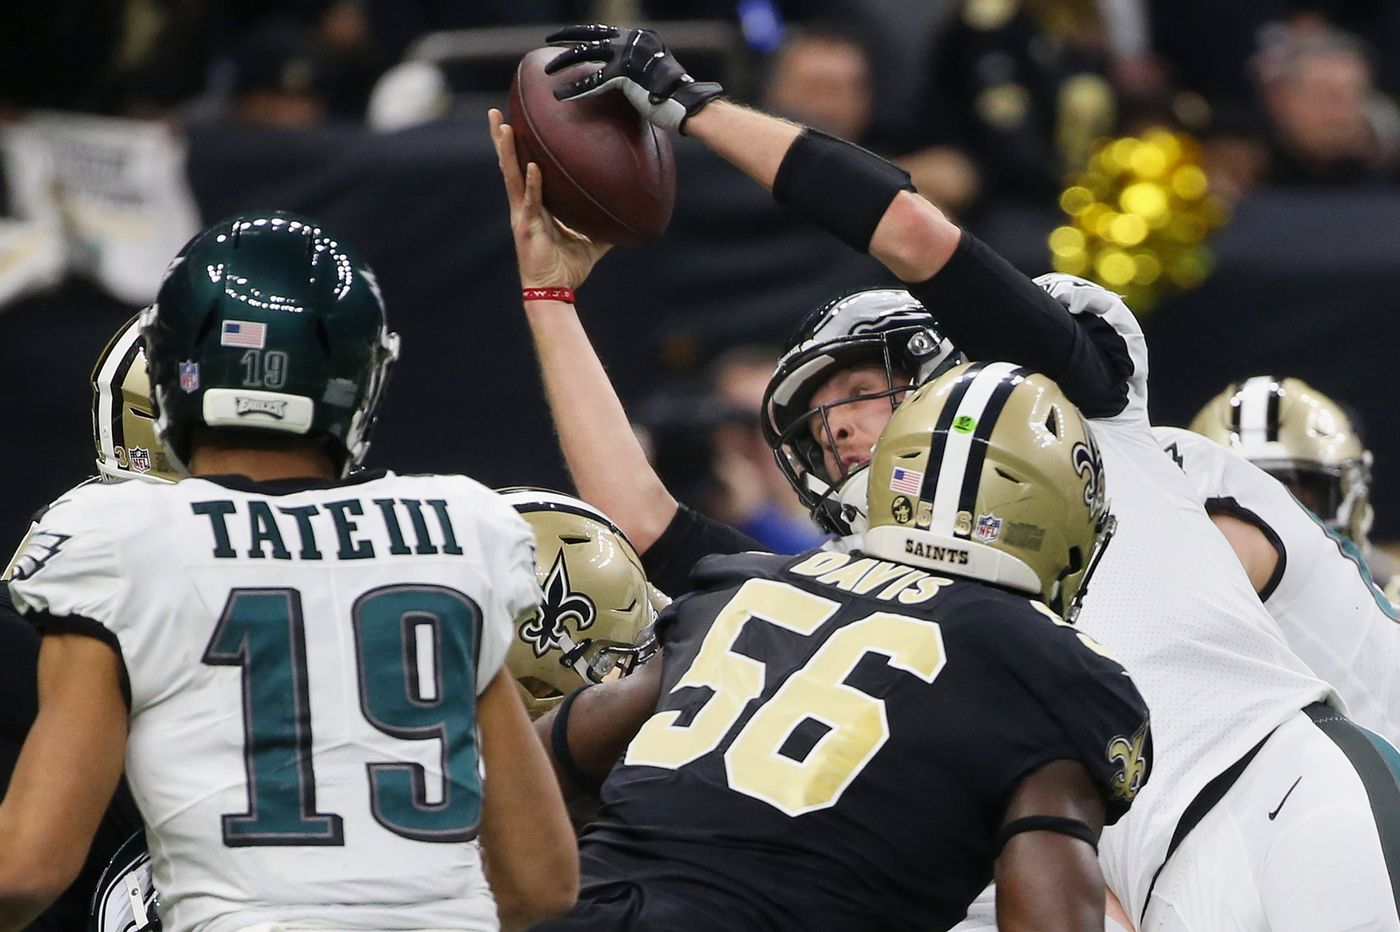 Despite the loss to the Saints, give this Eagles team credit: Everyone gave everything | Mike Sielski